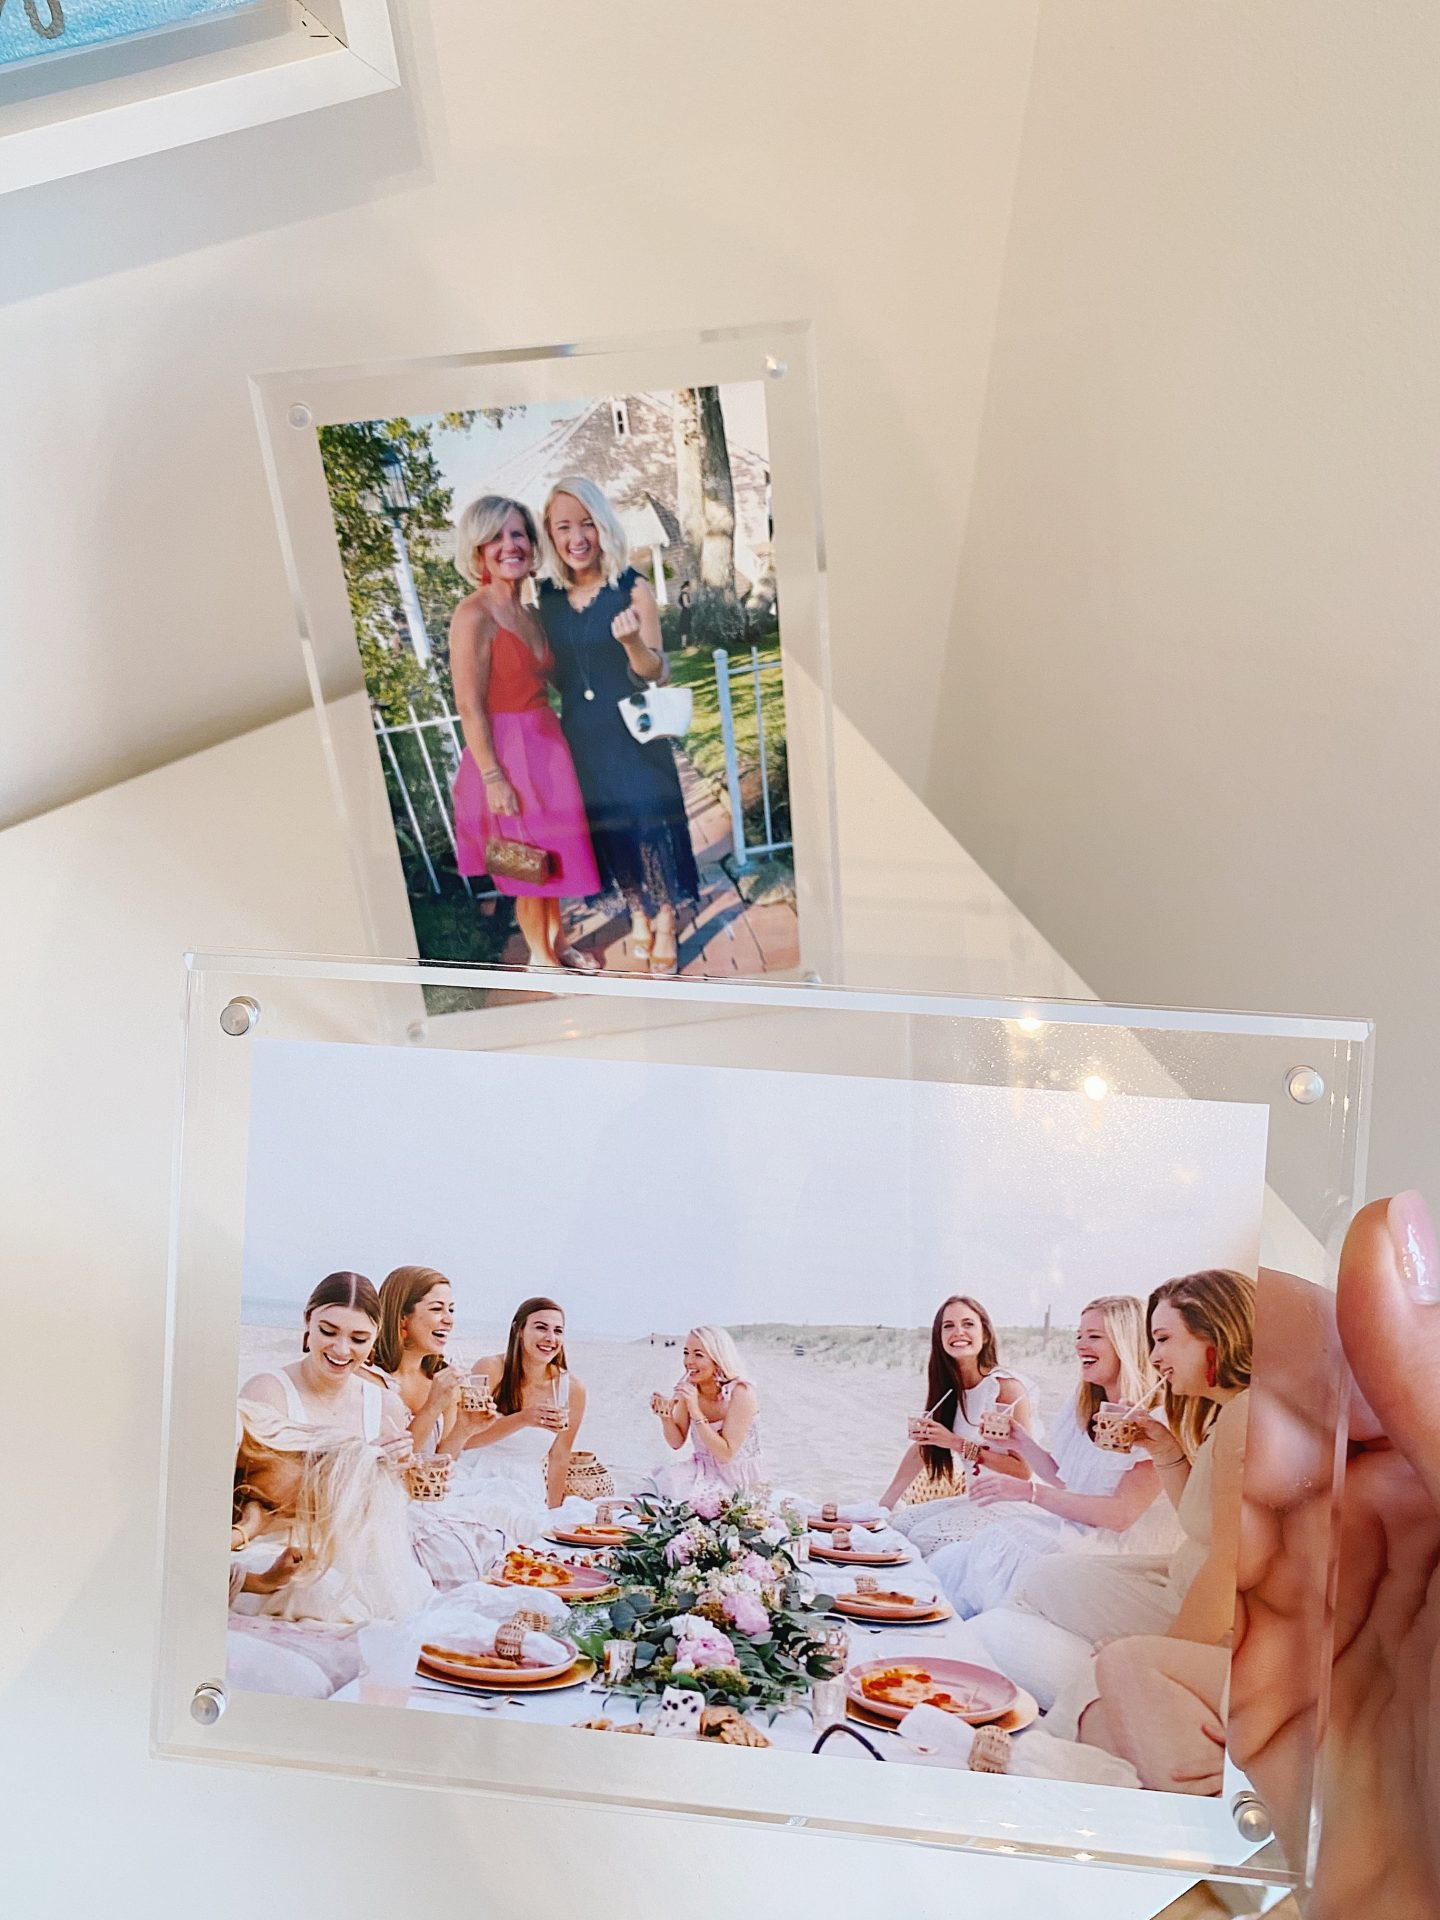 Amazon Prime Home Décor Finds Acrylic Picture Frame